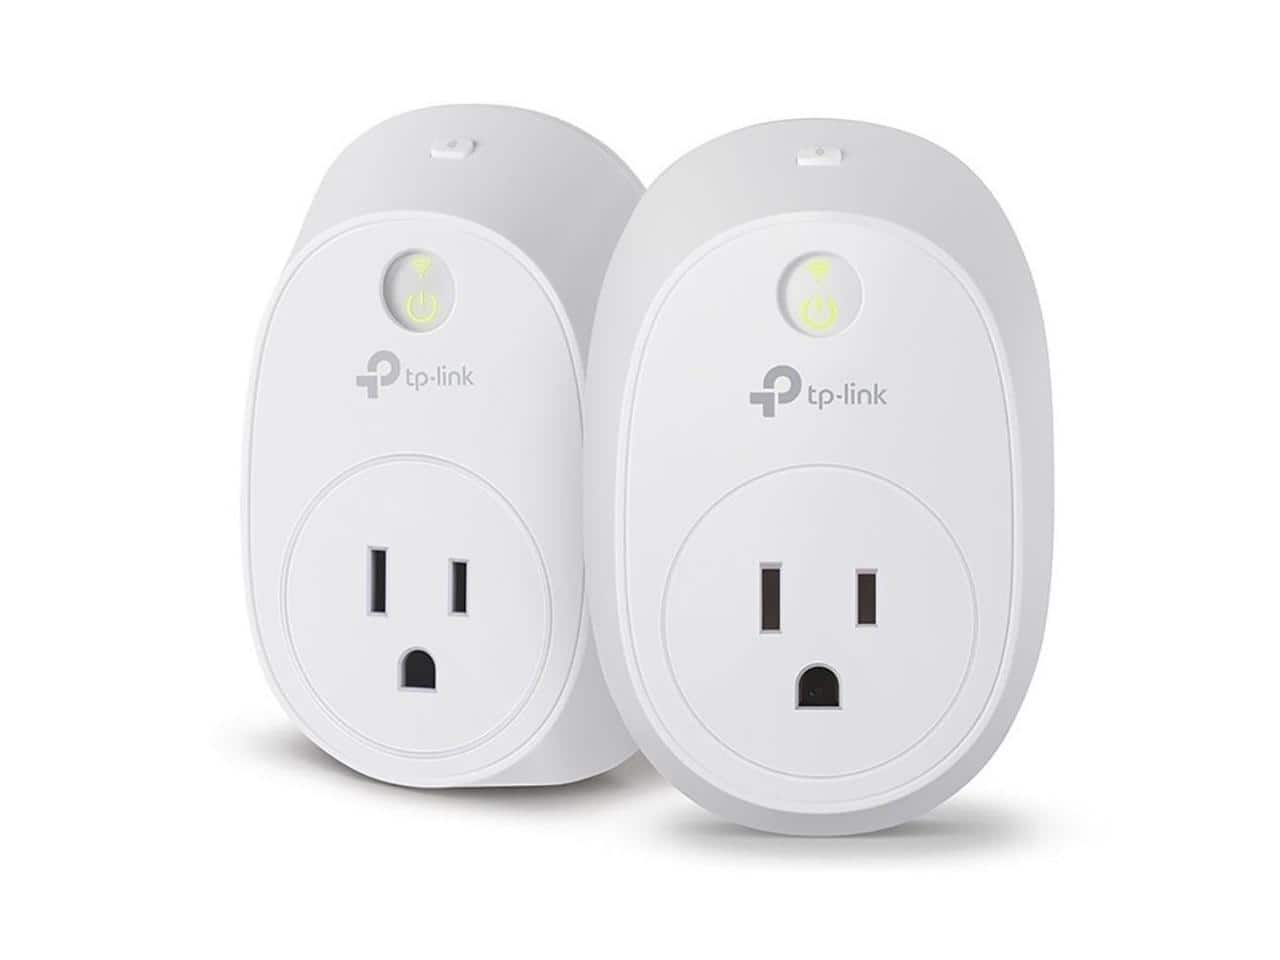 2-Pack TP-Link HS110 KIT Wi-Fi Smart Plug w/ Energy Monitoring $22.99 + Free Shipping via Newegg